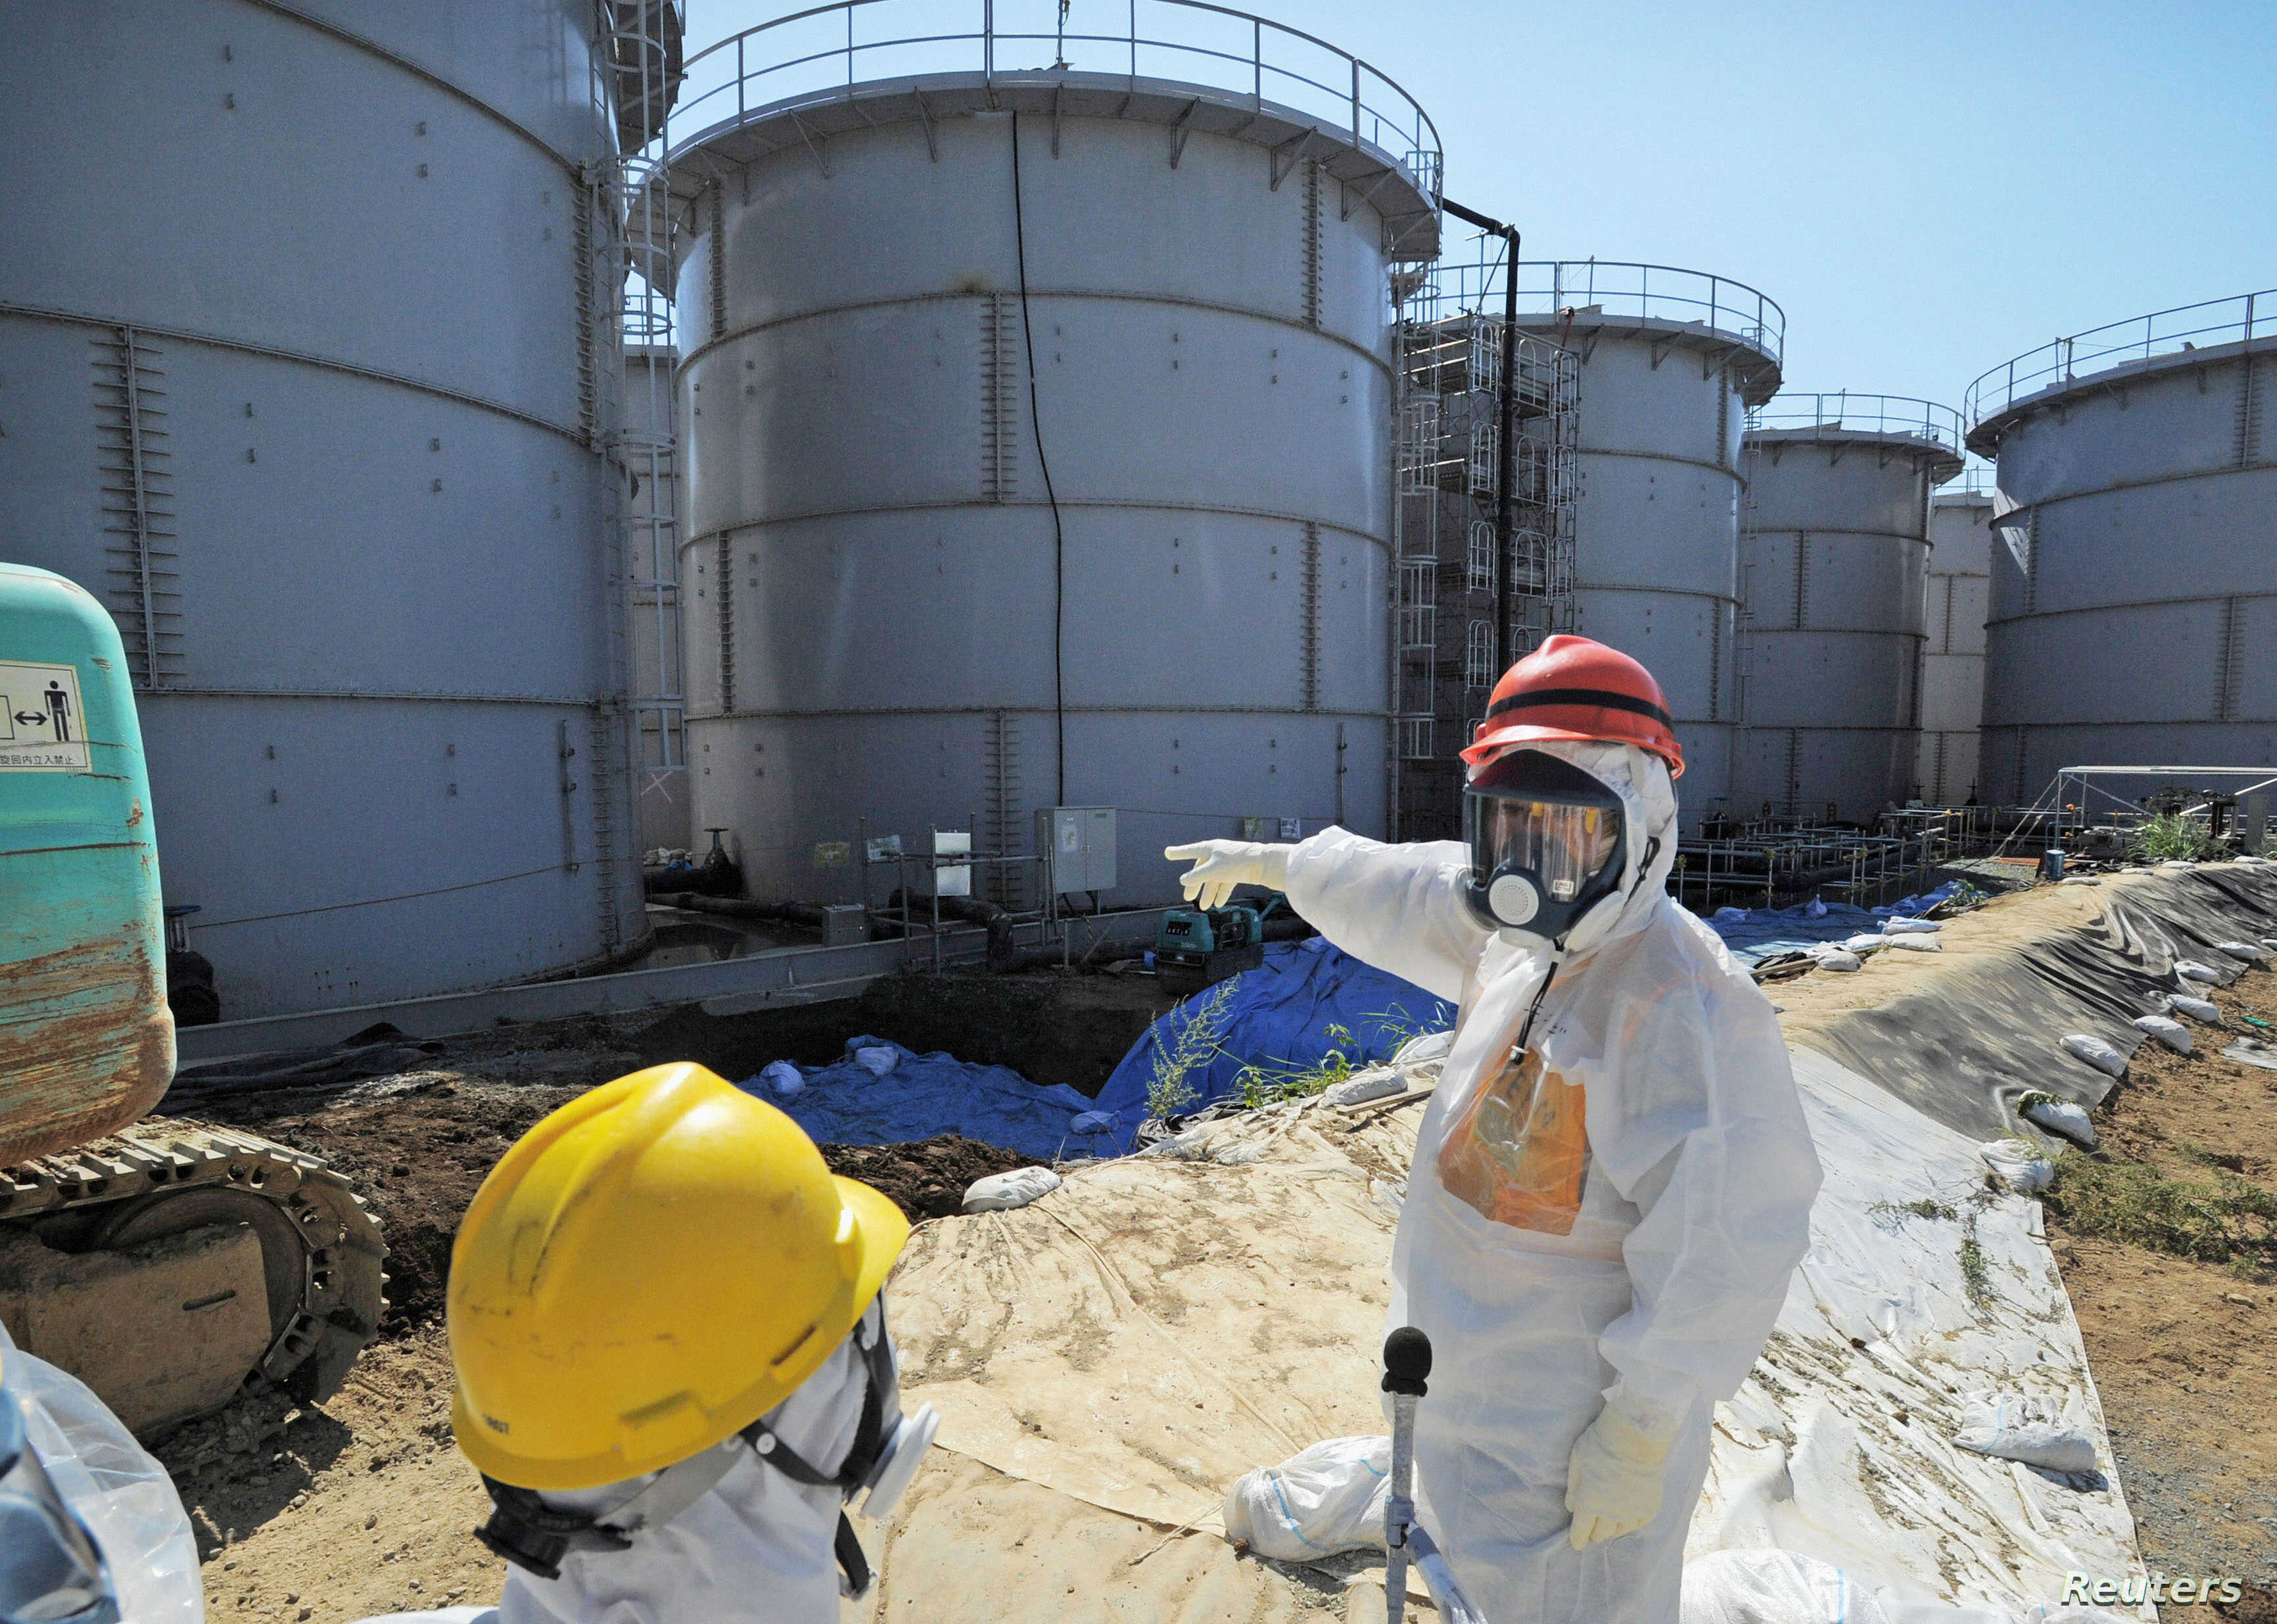 Japan's Economy, Trade and Industry Minister Toshimitsu Motegi (R), wearing a protective suit and a mask, inspects contaminated water tanks at the tsunami-crippled Fukushima Daiichi nuclear power plant in Fukushima prefecture August 26, 2013, in this